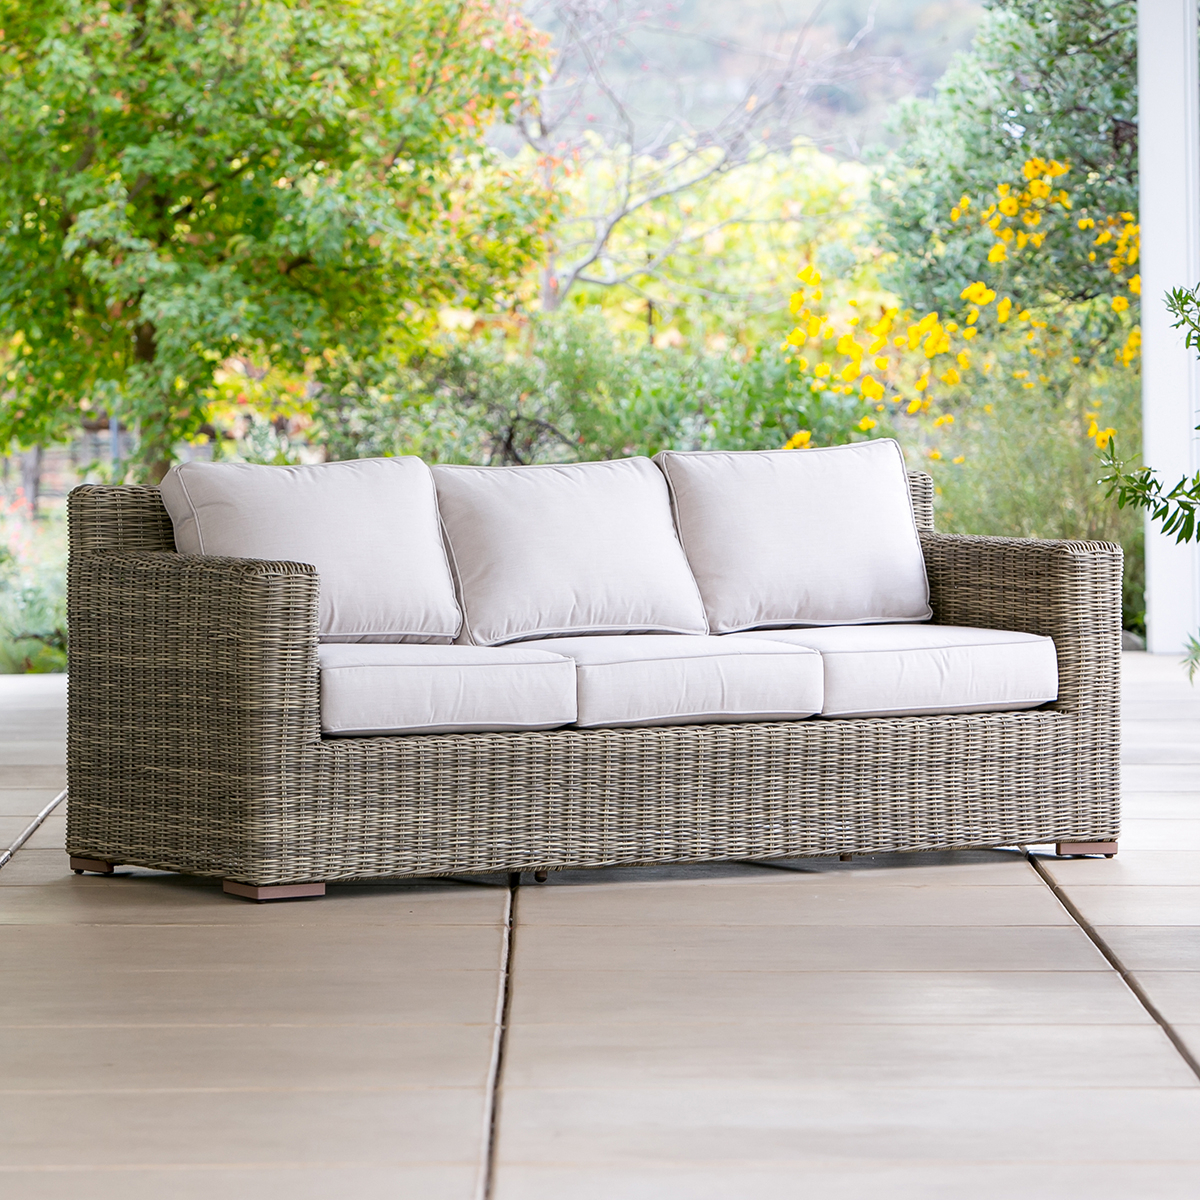 Sausalito Sofa – Modern Outdoor Furniture   Terra Patio Within Outdoor Sofa Chairs (View 6 of 15)